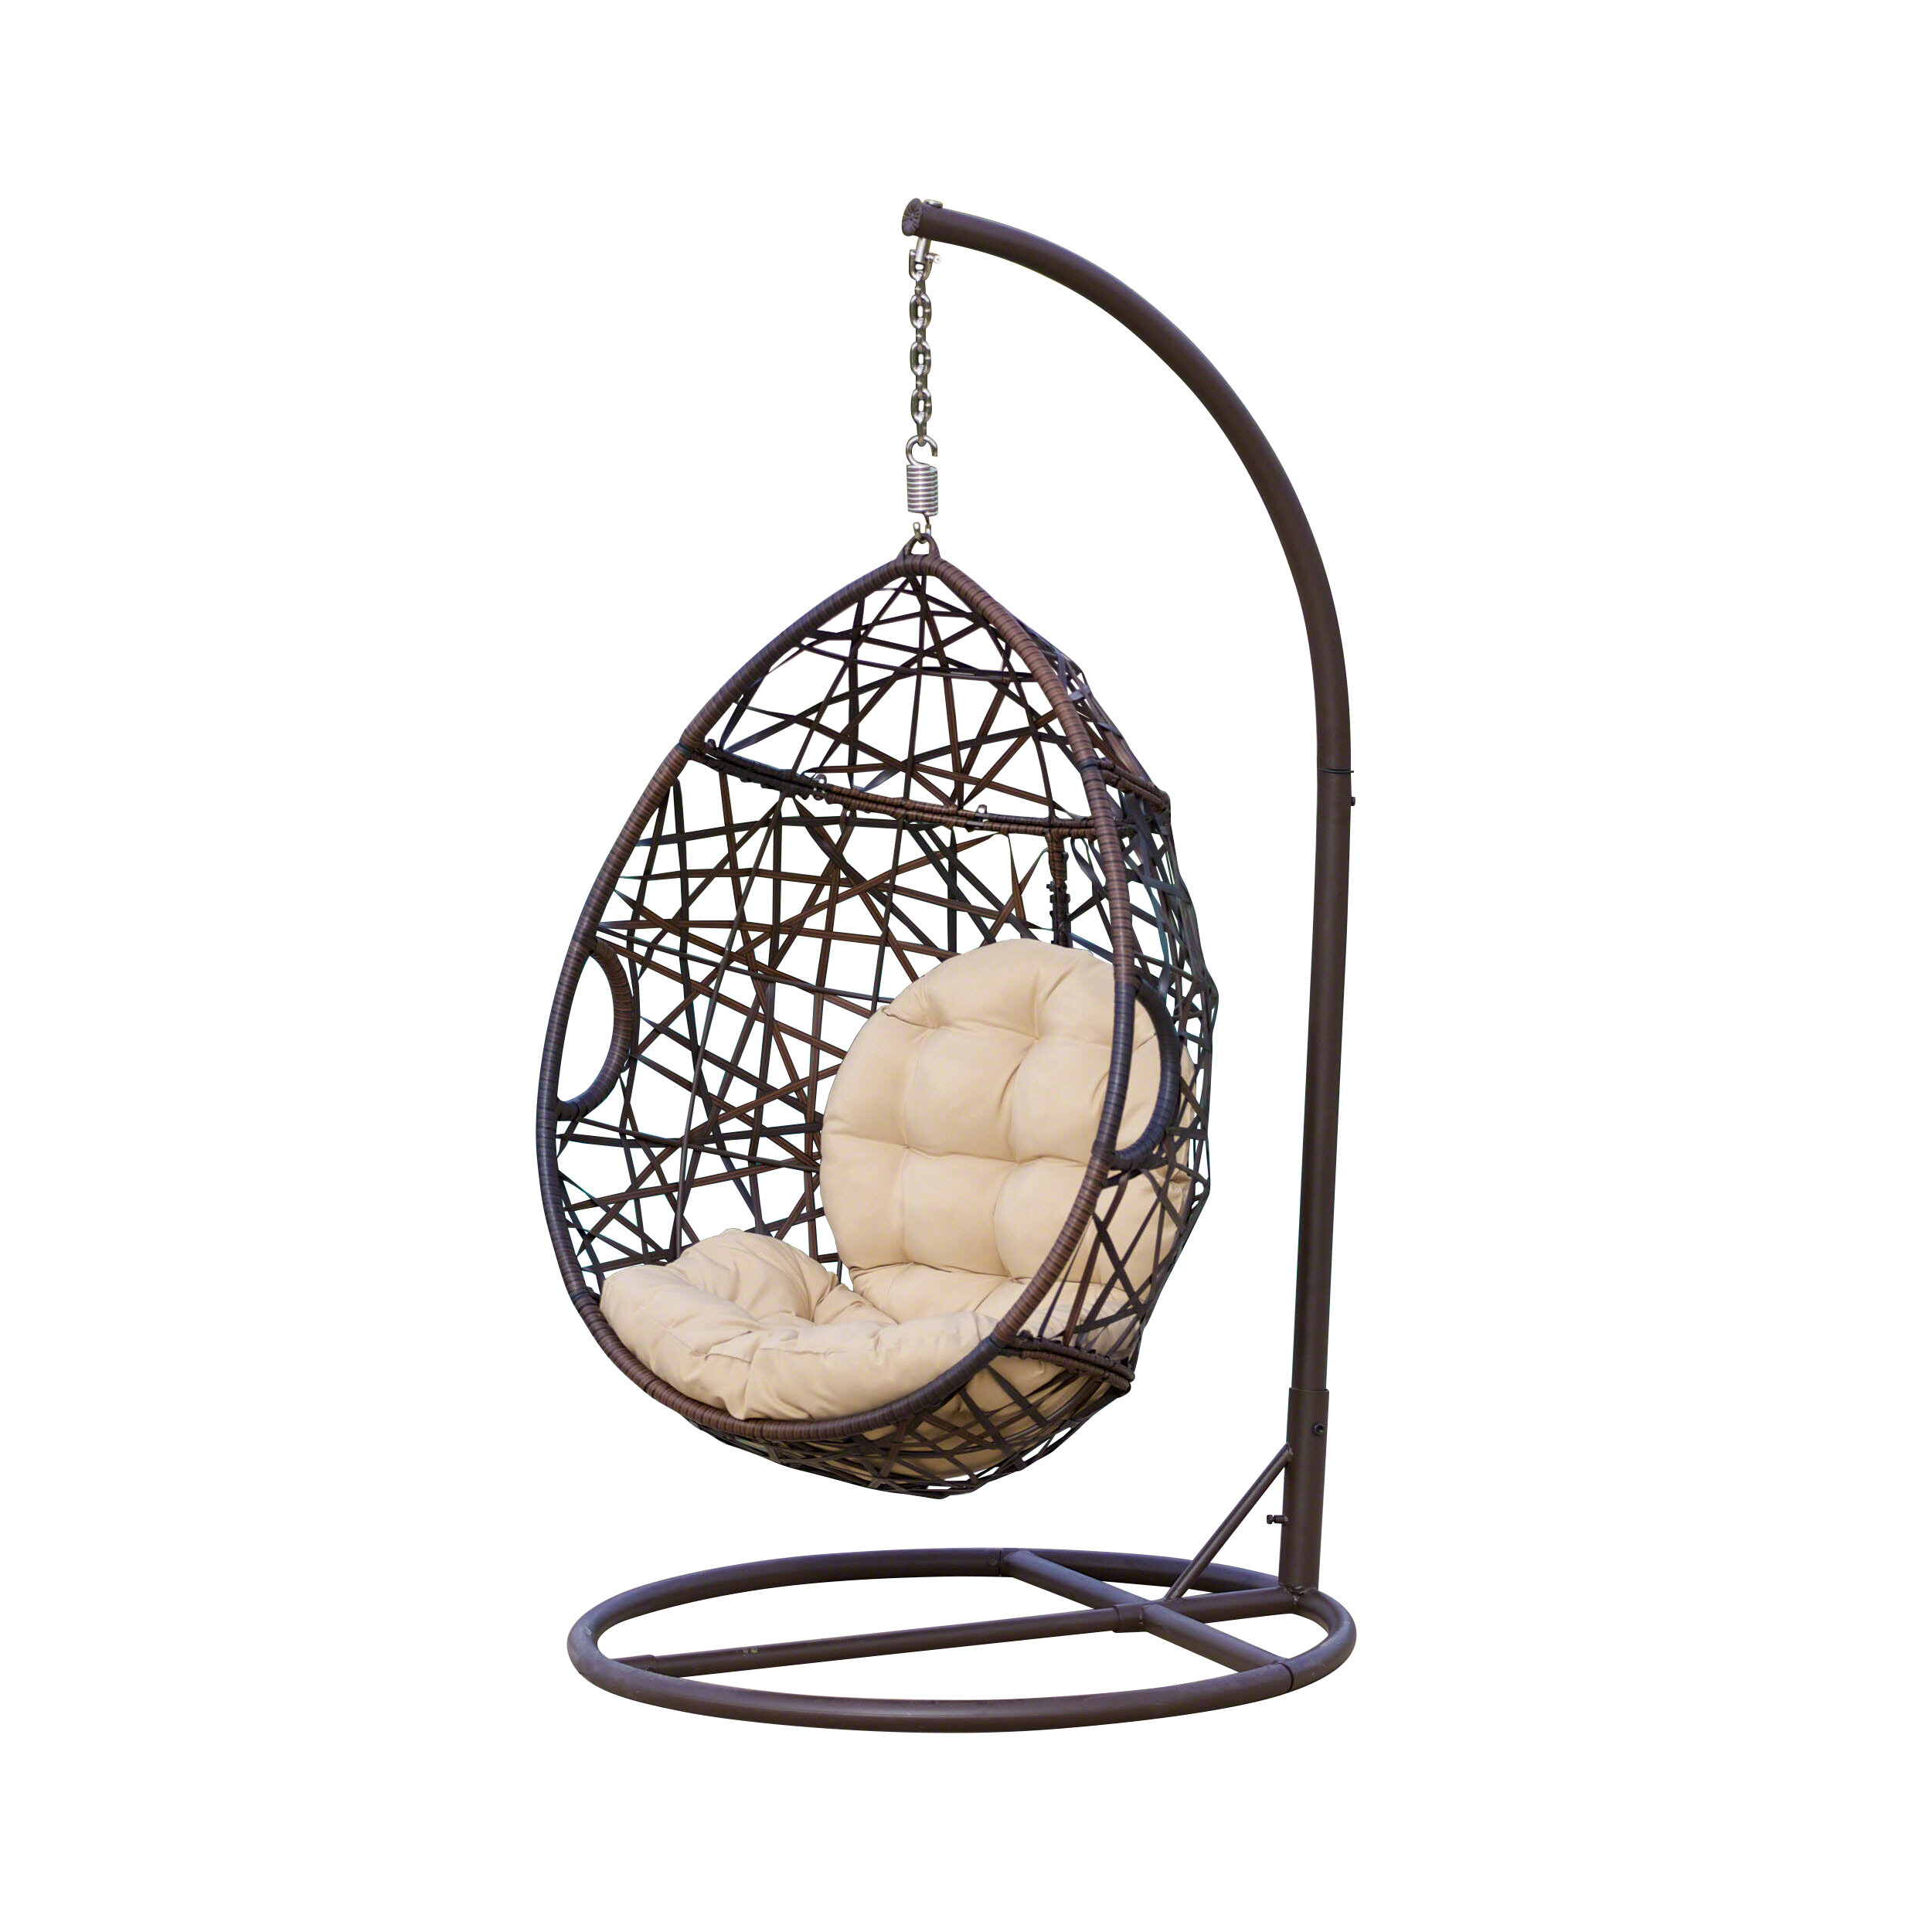 Anner Tear Drop Swing Chair With Stand Joss Main